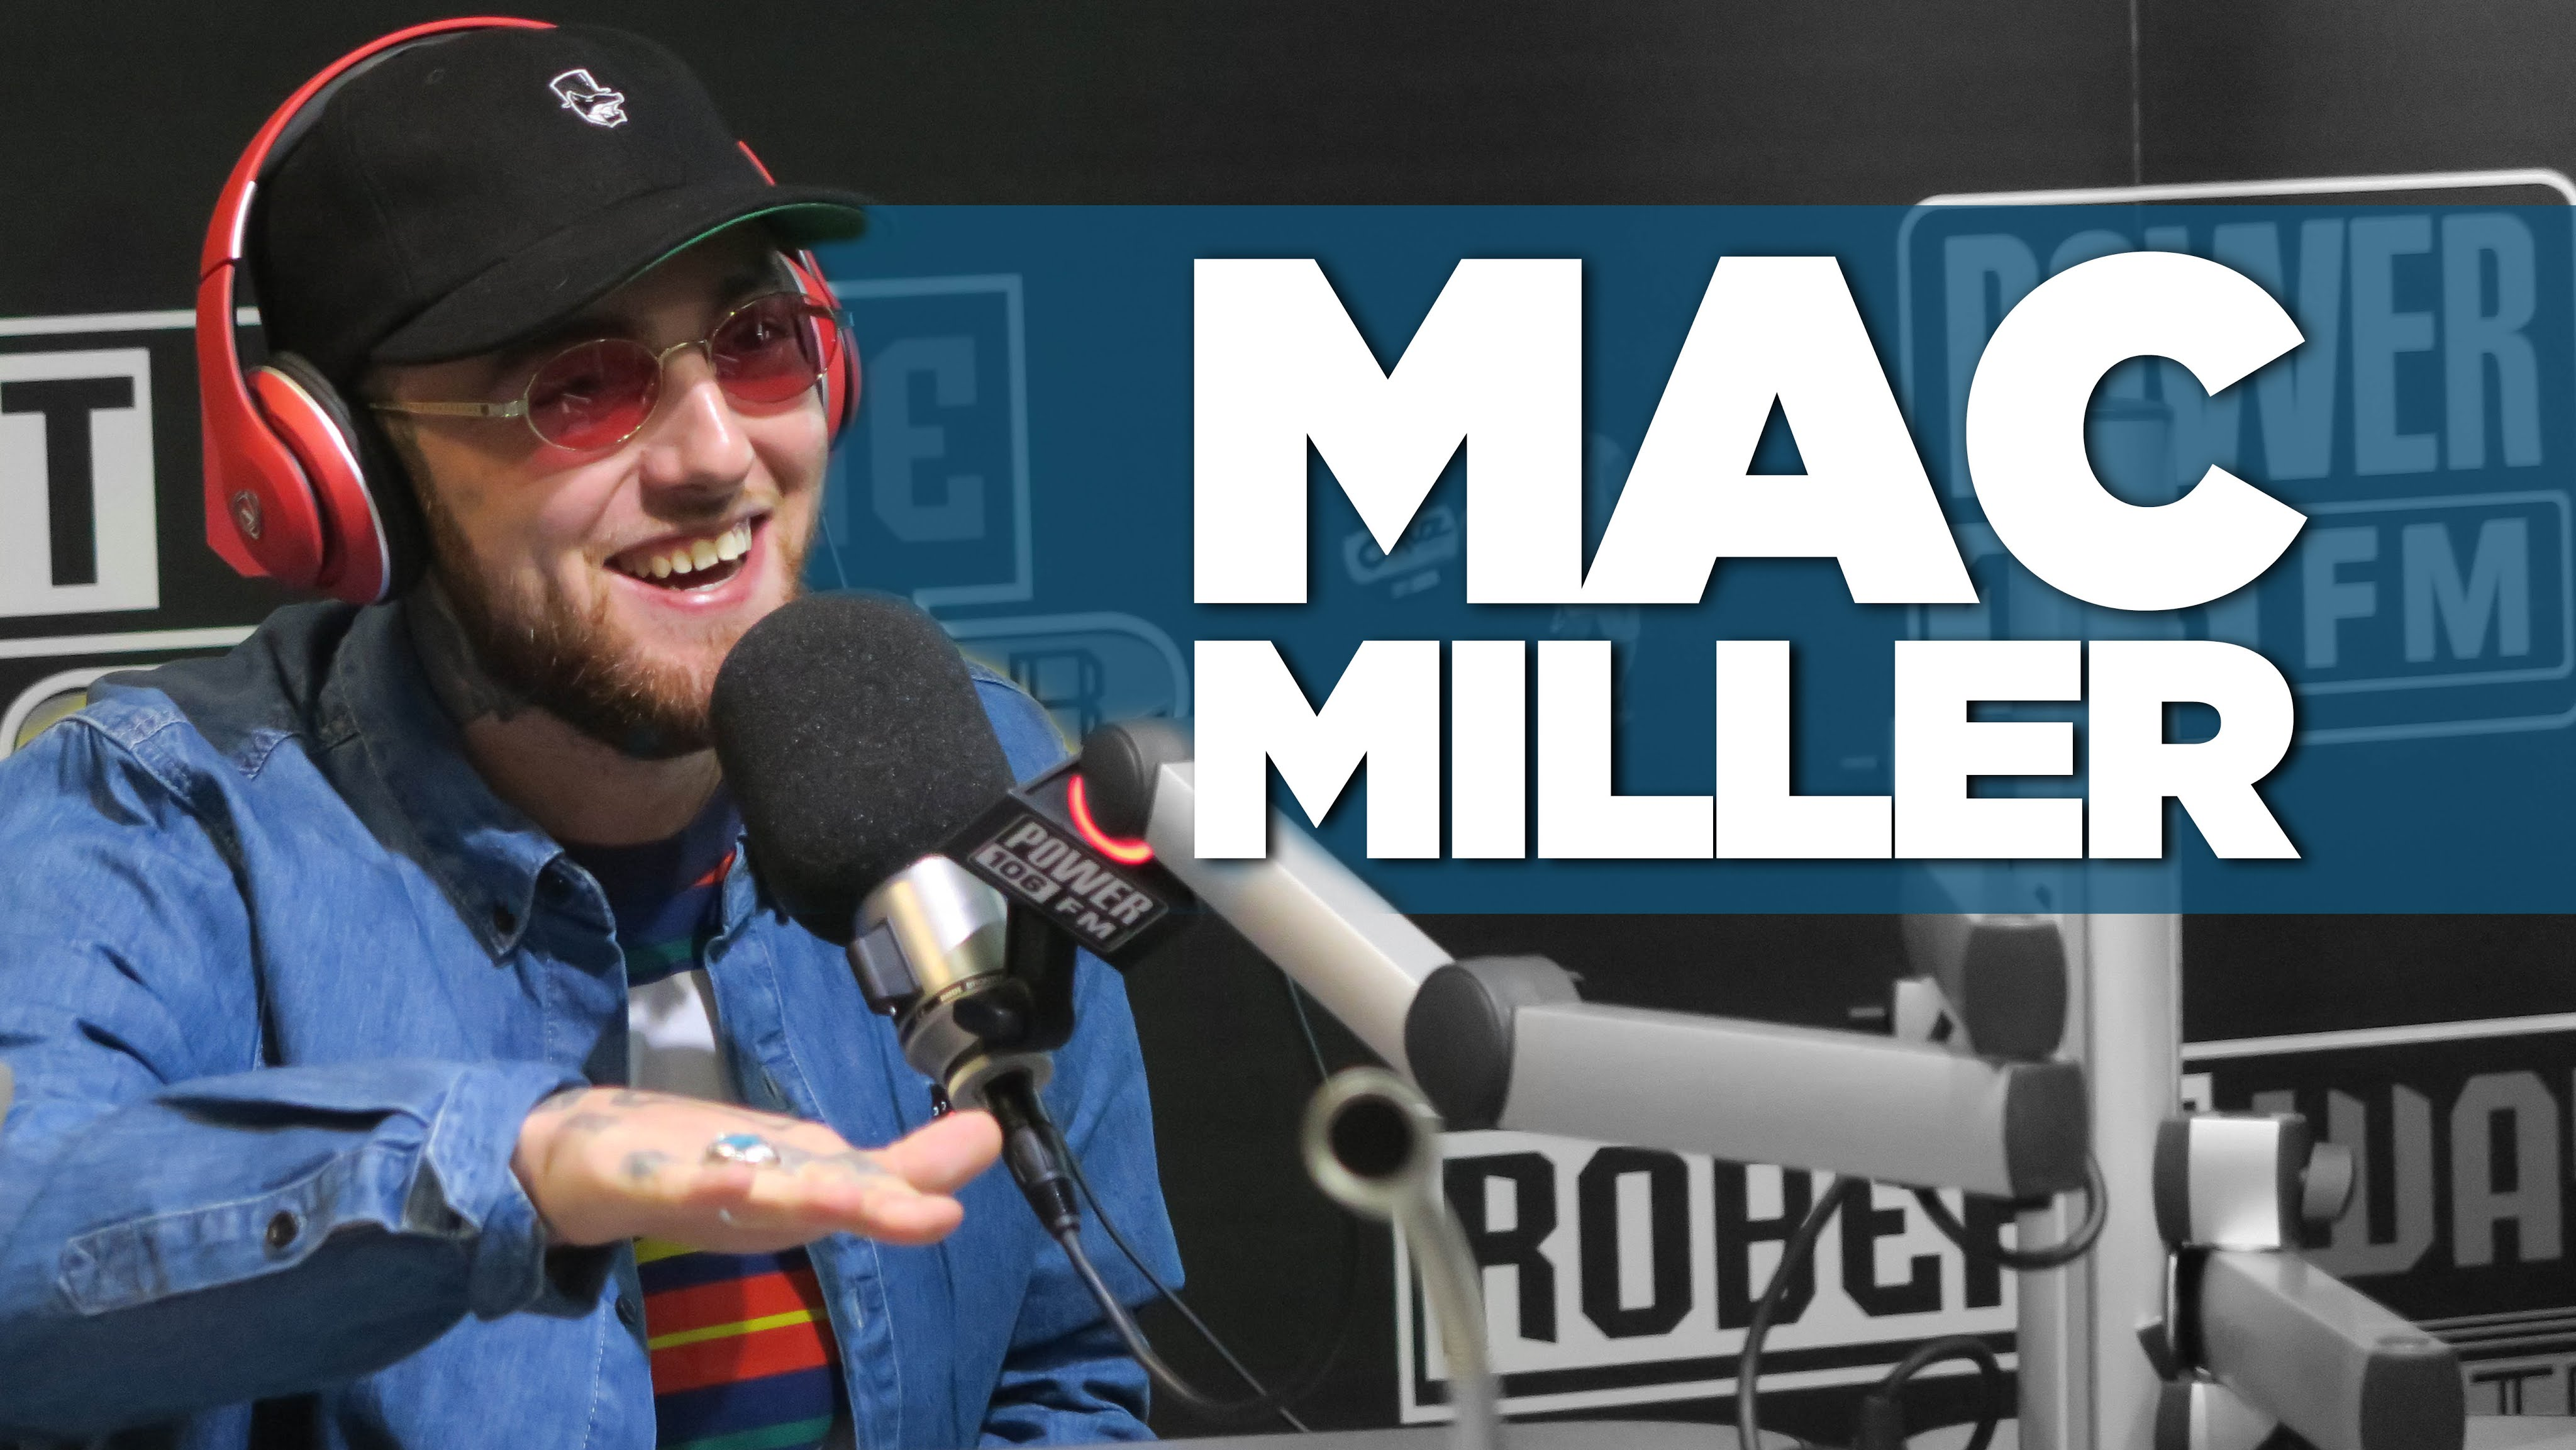 Mac Miller Talks New Album, Ariana Grande, Sobriety & More On 'The Cruz Show' (VIDEO)